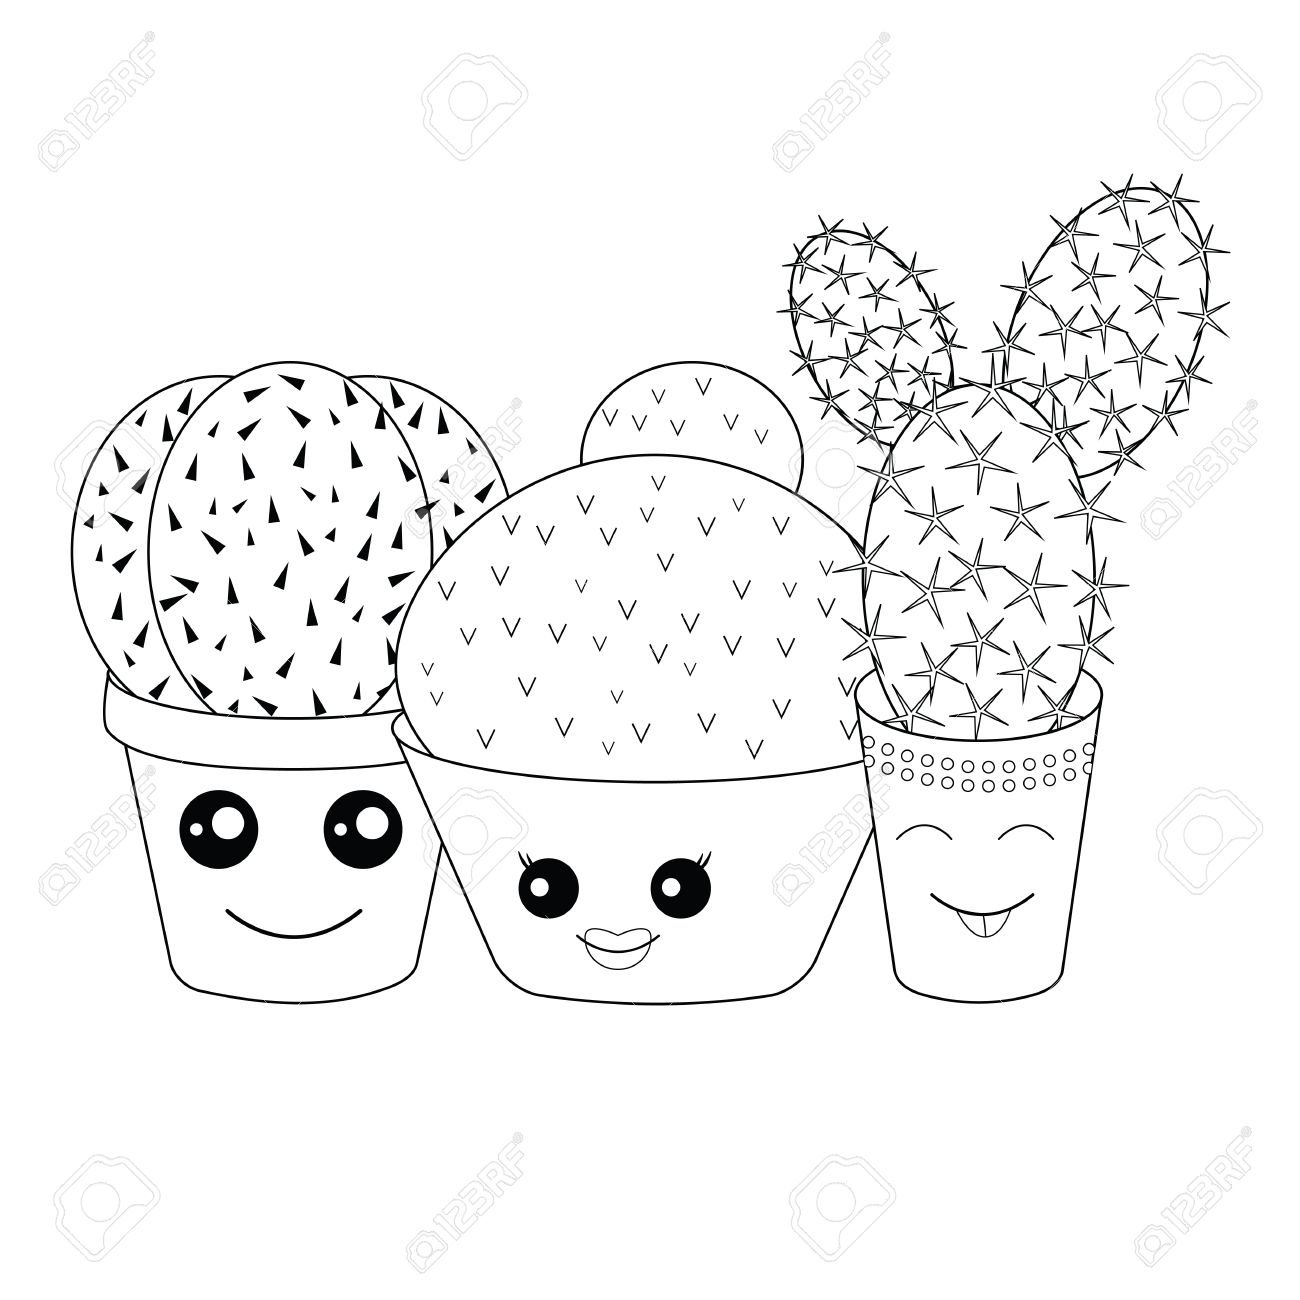 Coloring With CactiColoring PageHilarious Family Of Cacti On